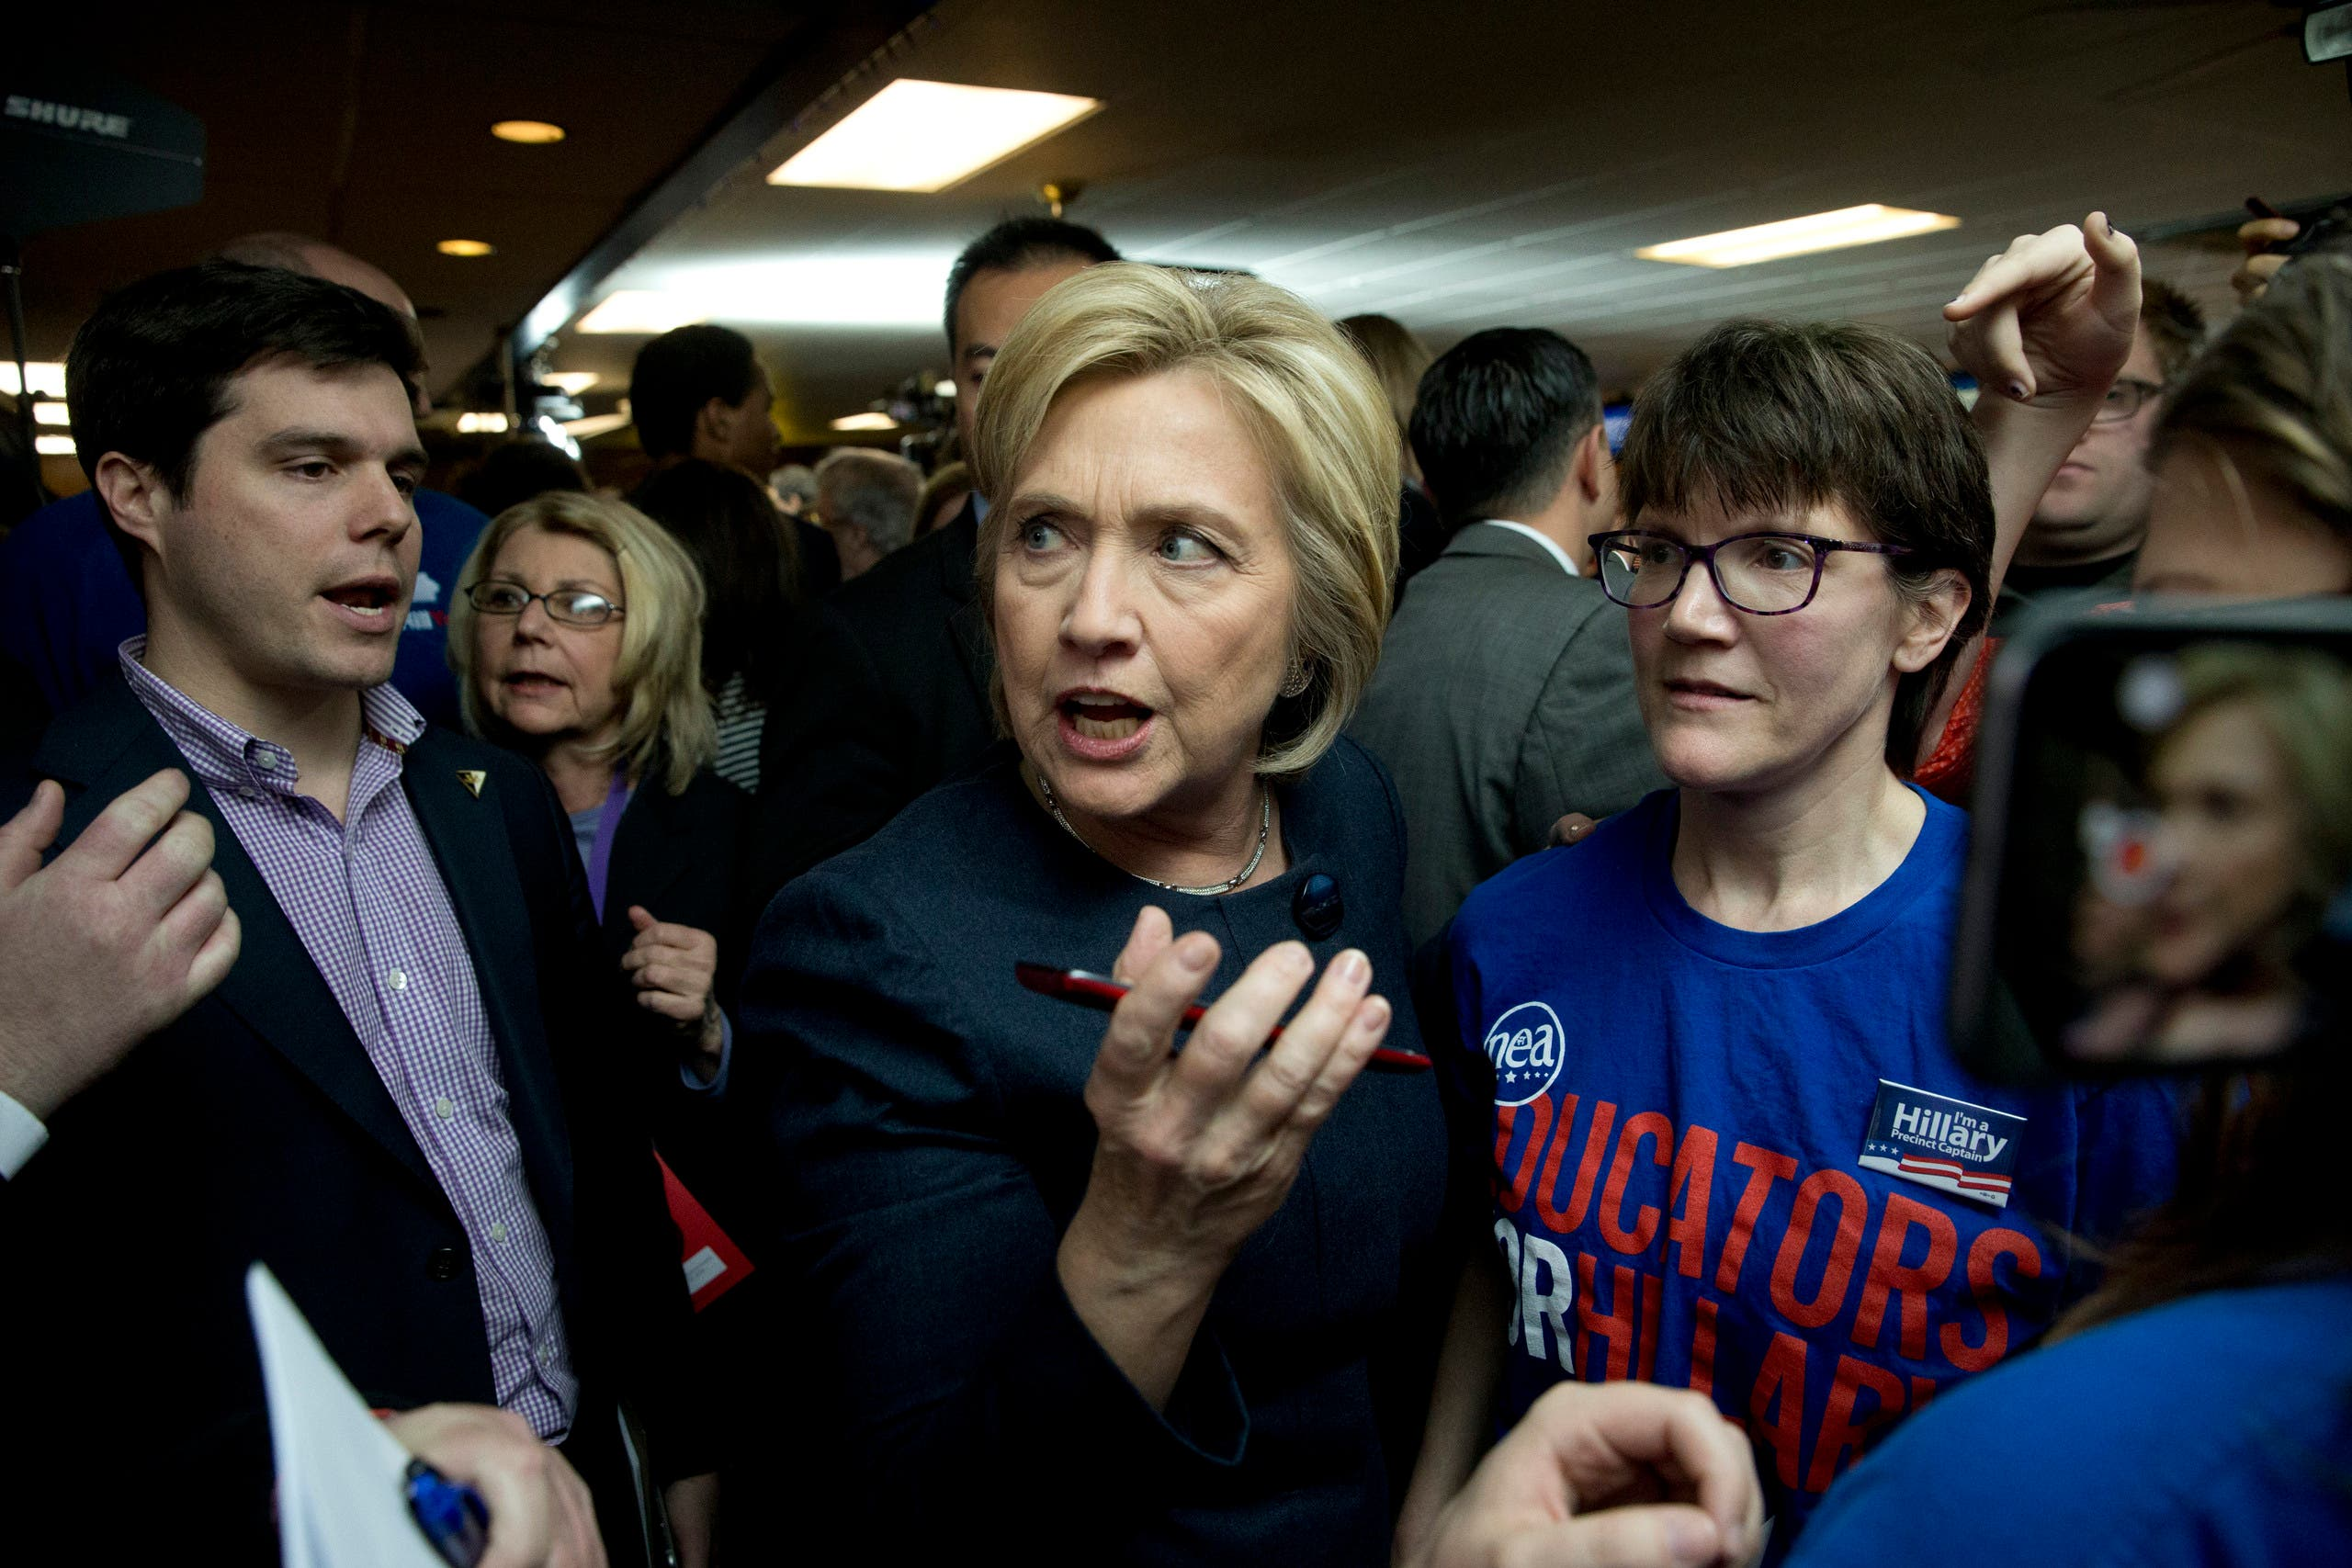 Then-Democratic presidential candidate Hillary Clinton at a campaign event on Jan. 27, 2016 in Adel, Iowa. (AP)